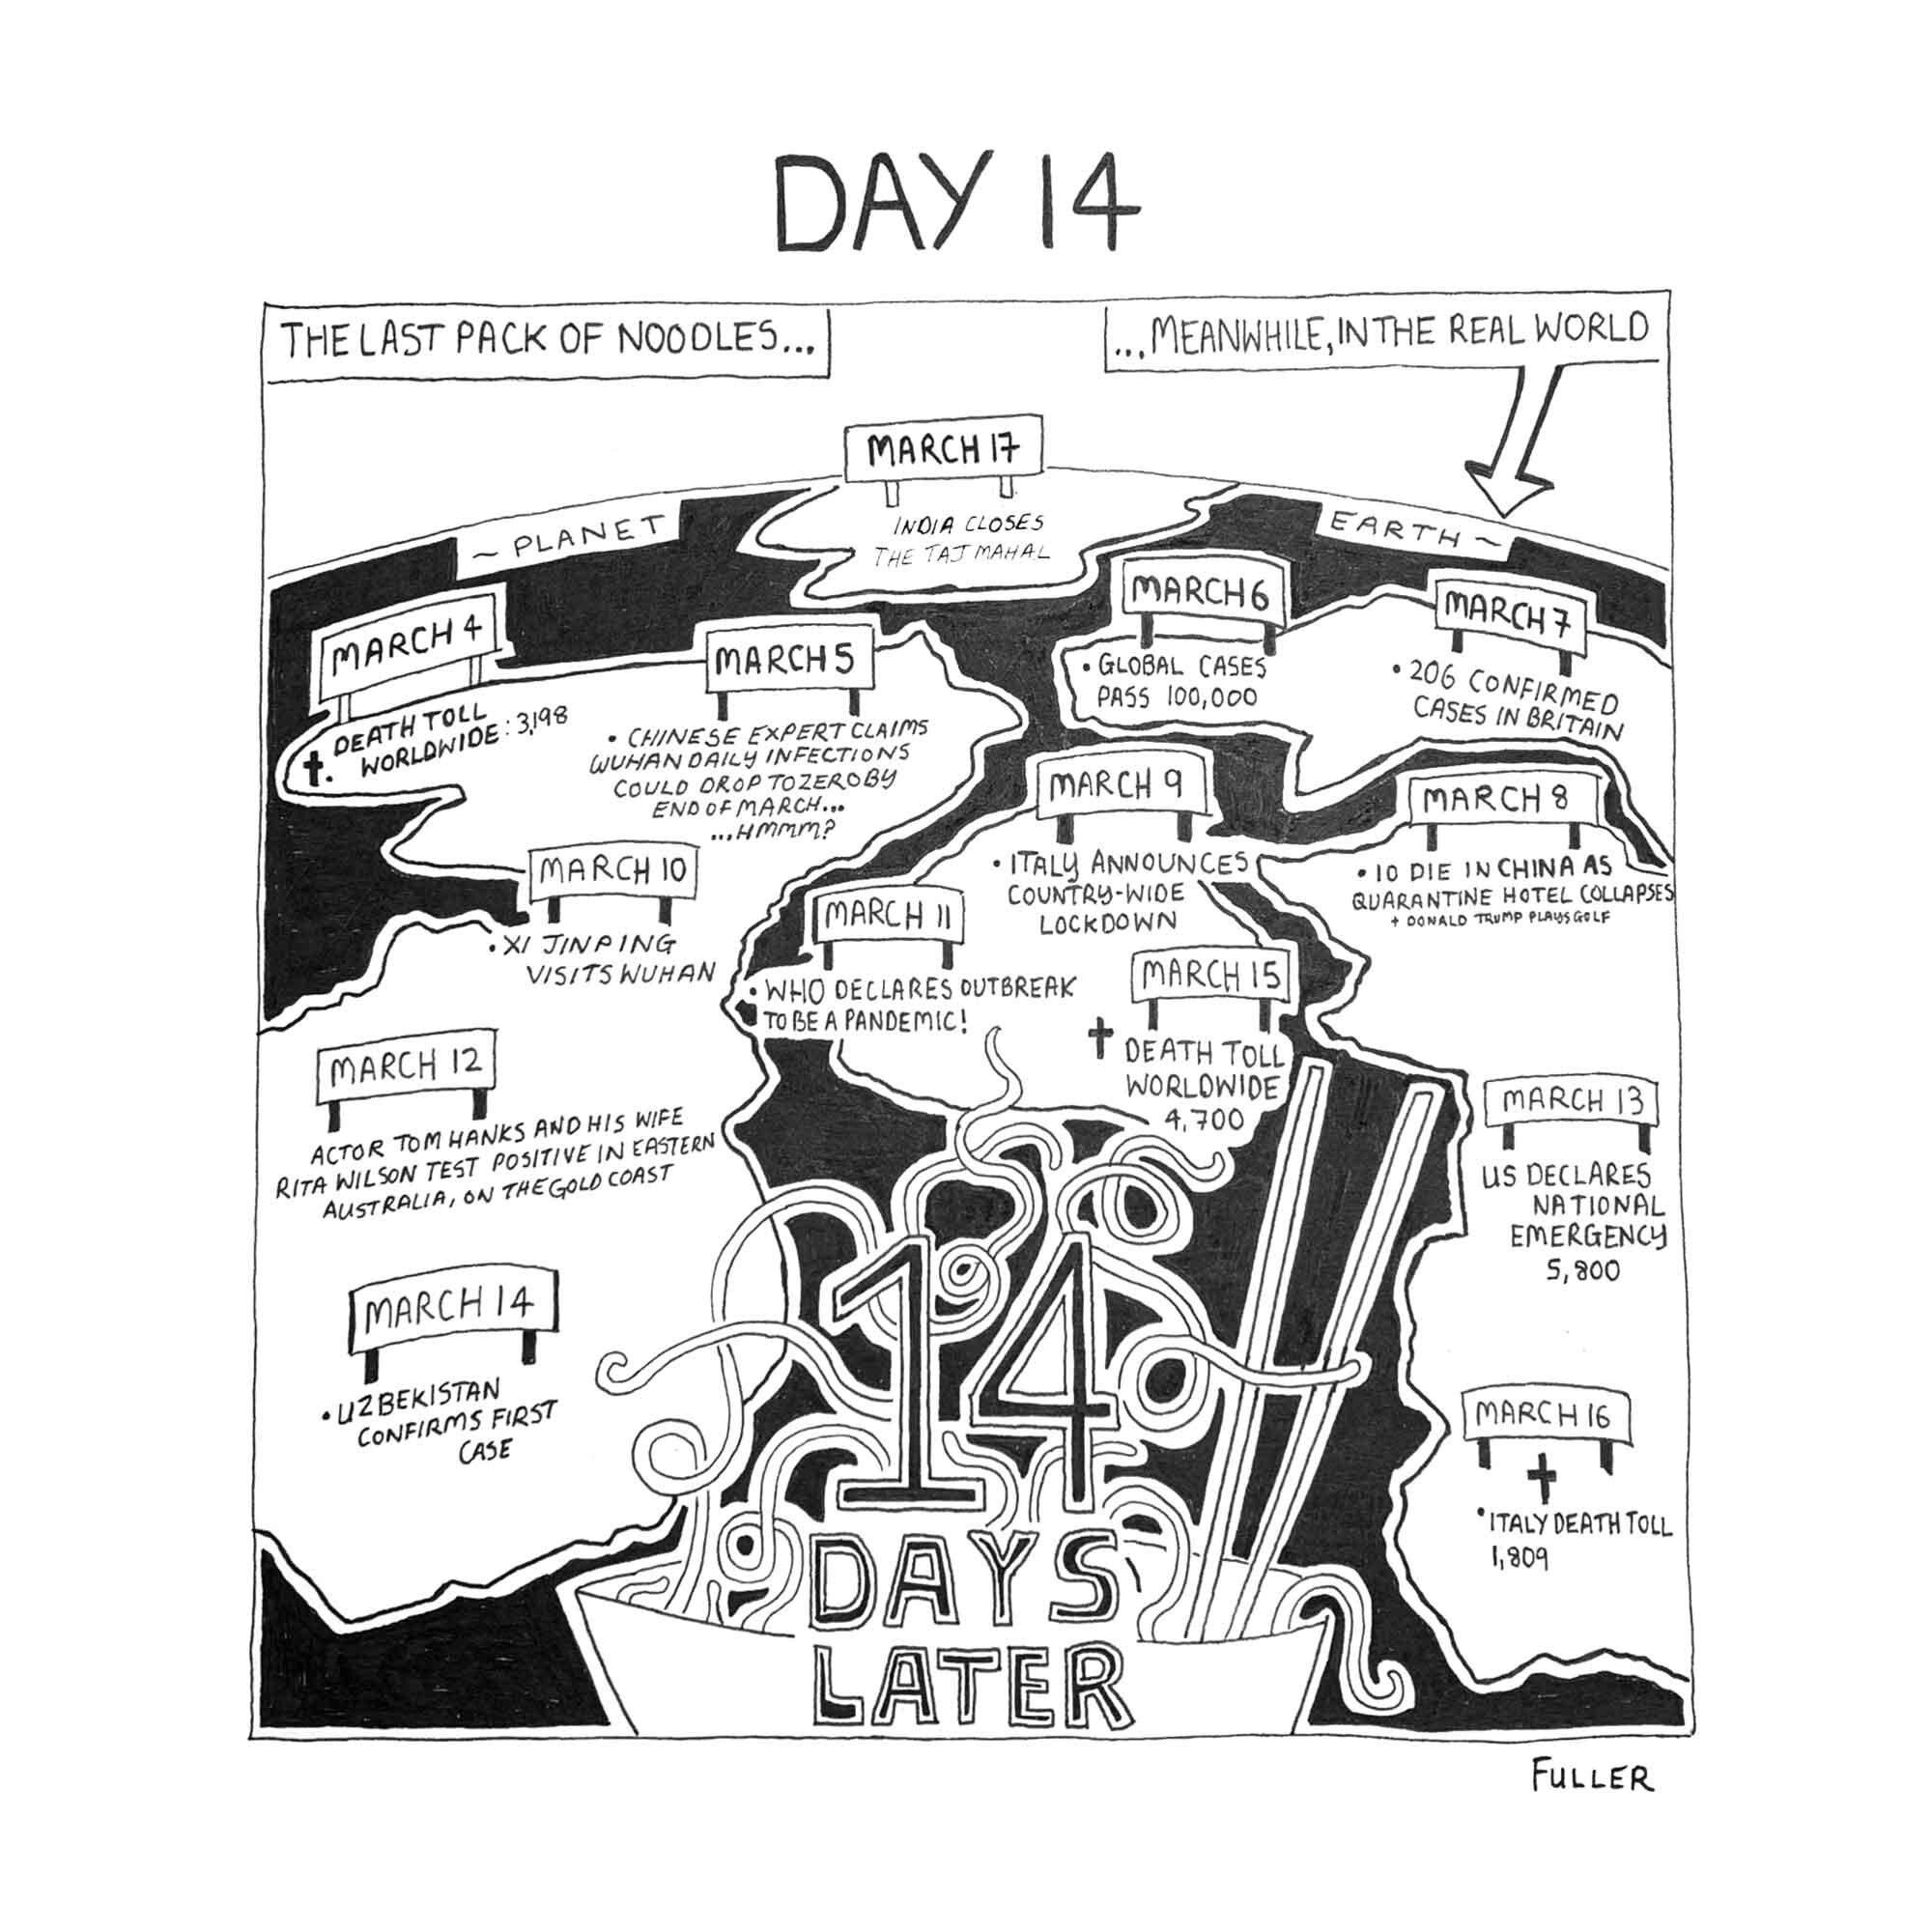 DAY 14 / Quarantine May By FULLER (Copy)